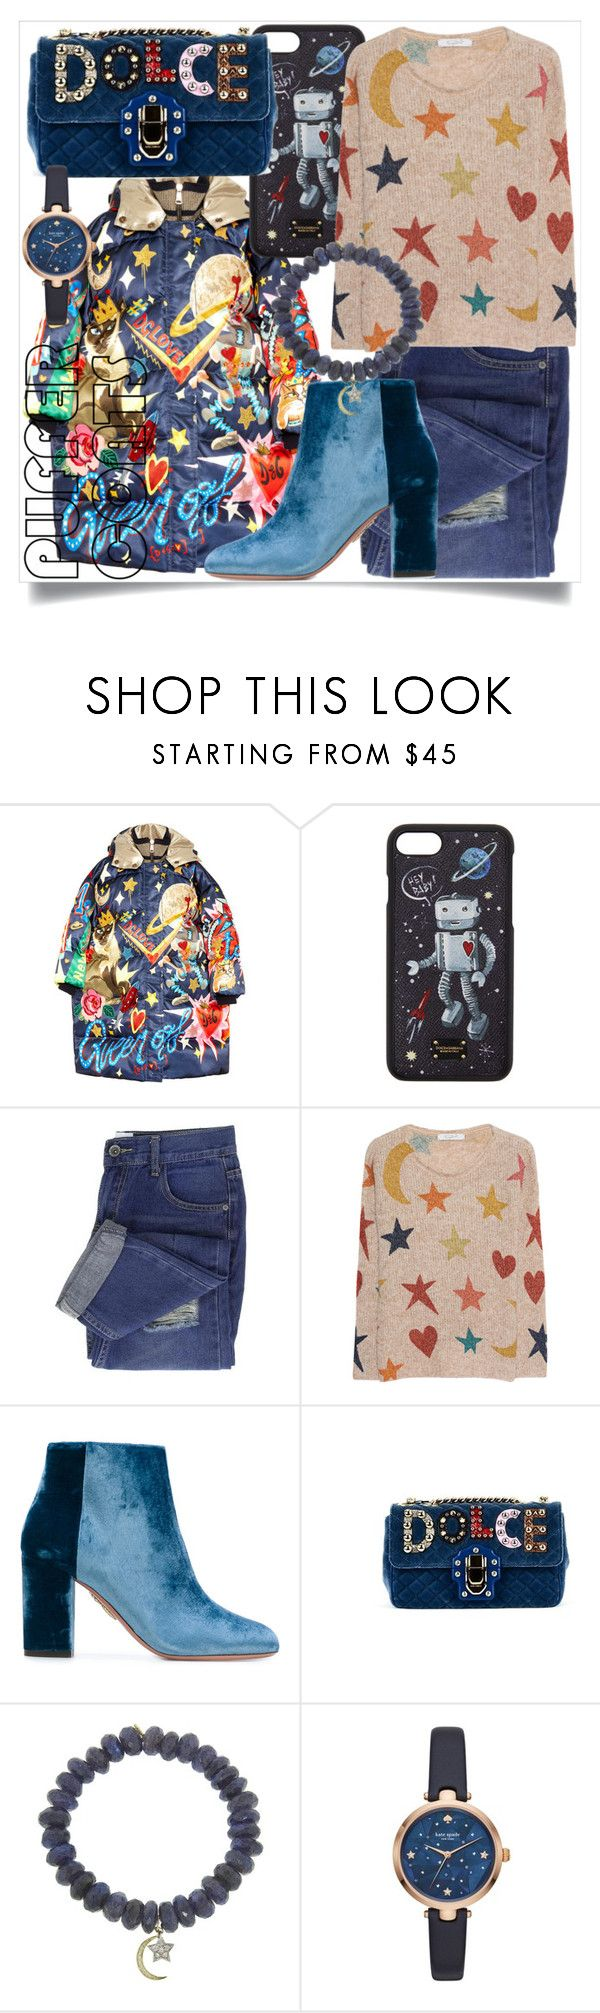 """""""Moon and stars"""" by subvilli ❤ liked on Polyvore featuring Dolce&Gabbana, Frogbox, Aquazzura, Sydney Evan and Kate Spade"""